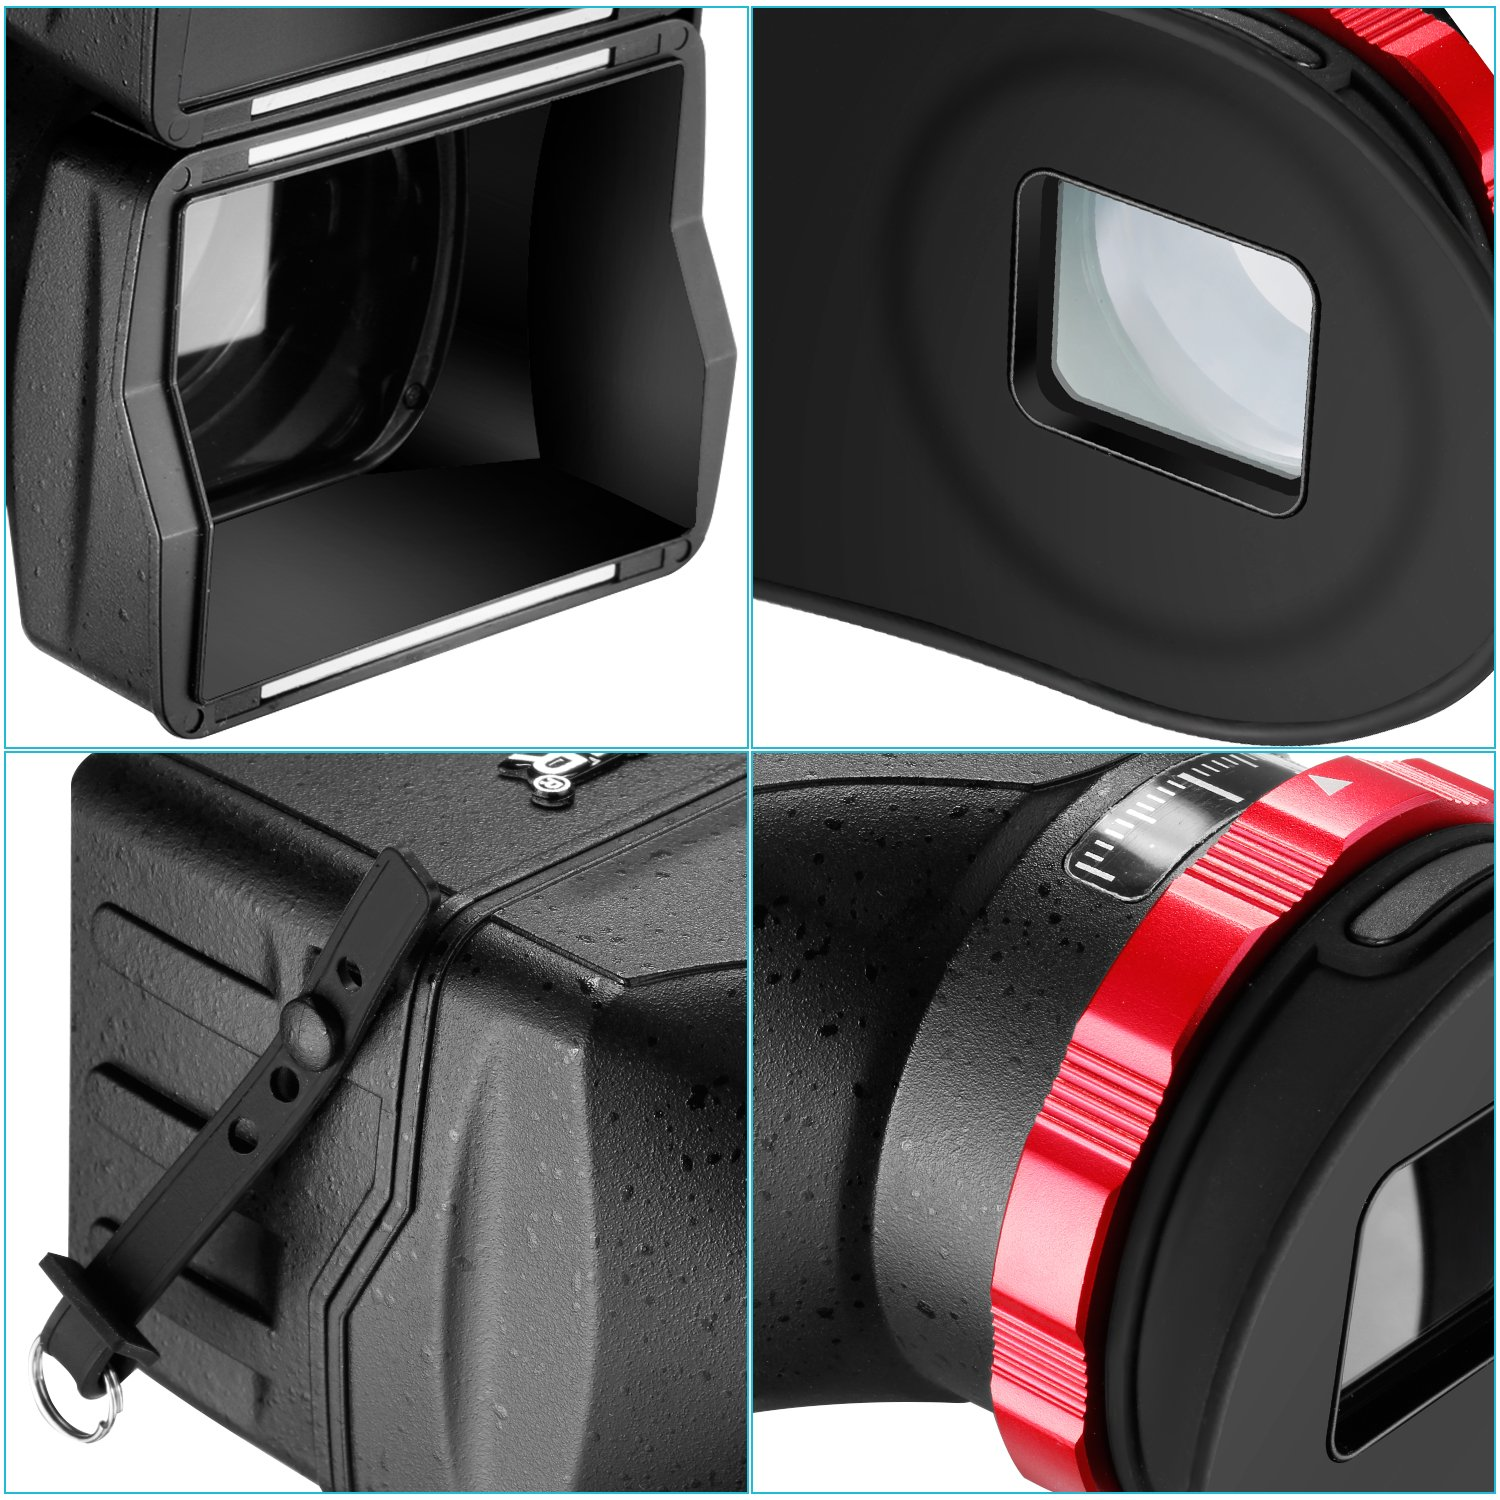 Neewer S7 3-in-1 Pro Optical Viewfinder,Screen Protector,Sunshade Hood with 3X Magnification for Sony A7RII, A7II, A7, A7R, A7M2, A7R2, A7M3, A7R3, A7s, A7s2, A7s3 and Other DSLRs with 3'' LCD Screen by Neewer (Image #5)